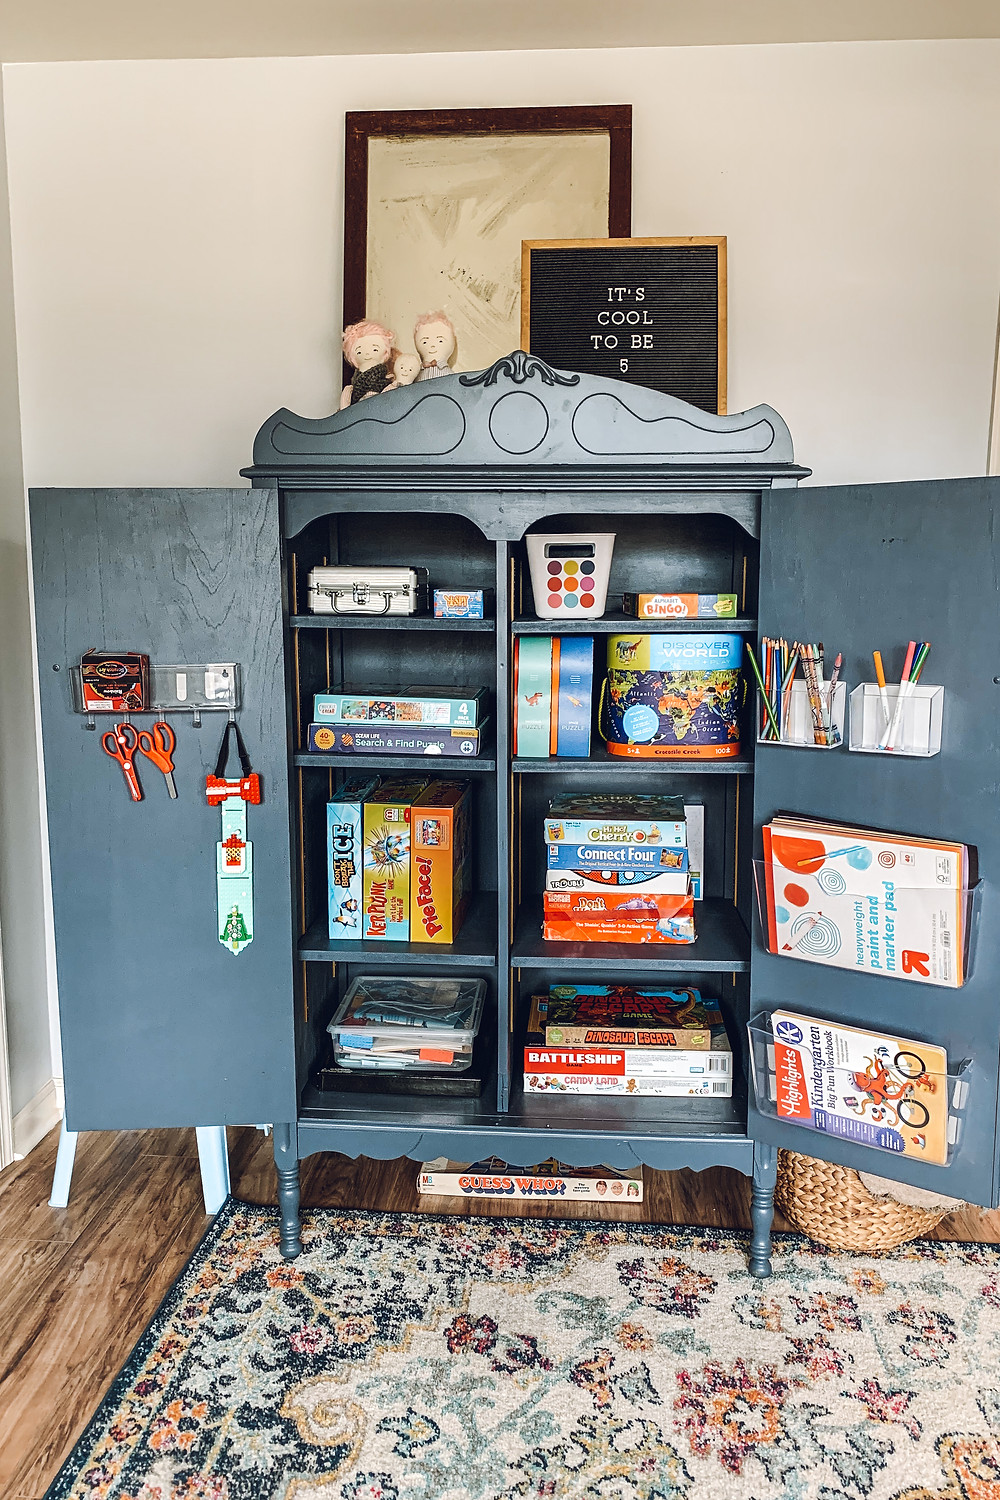 Playroom makeover, playroom storage ideas, antique armoire, refinishing antique furniture, armoire makeover, new uses for armoire, toy storage, lego storage ideas, playroom design, playroom inspiration, playroom styling, art station ideas, storage ideas for toys, kid spaces, kid play space inspiration, best kids toys, educational kids toys, how to refinish antique furniture, how to refinish veneer furniture, armoire transformation, diy home improvement ideas, easy diy home improvement, kid friendly spaces, kid friendly storage